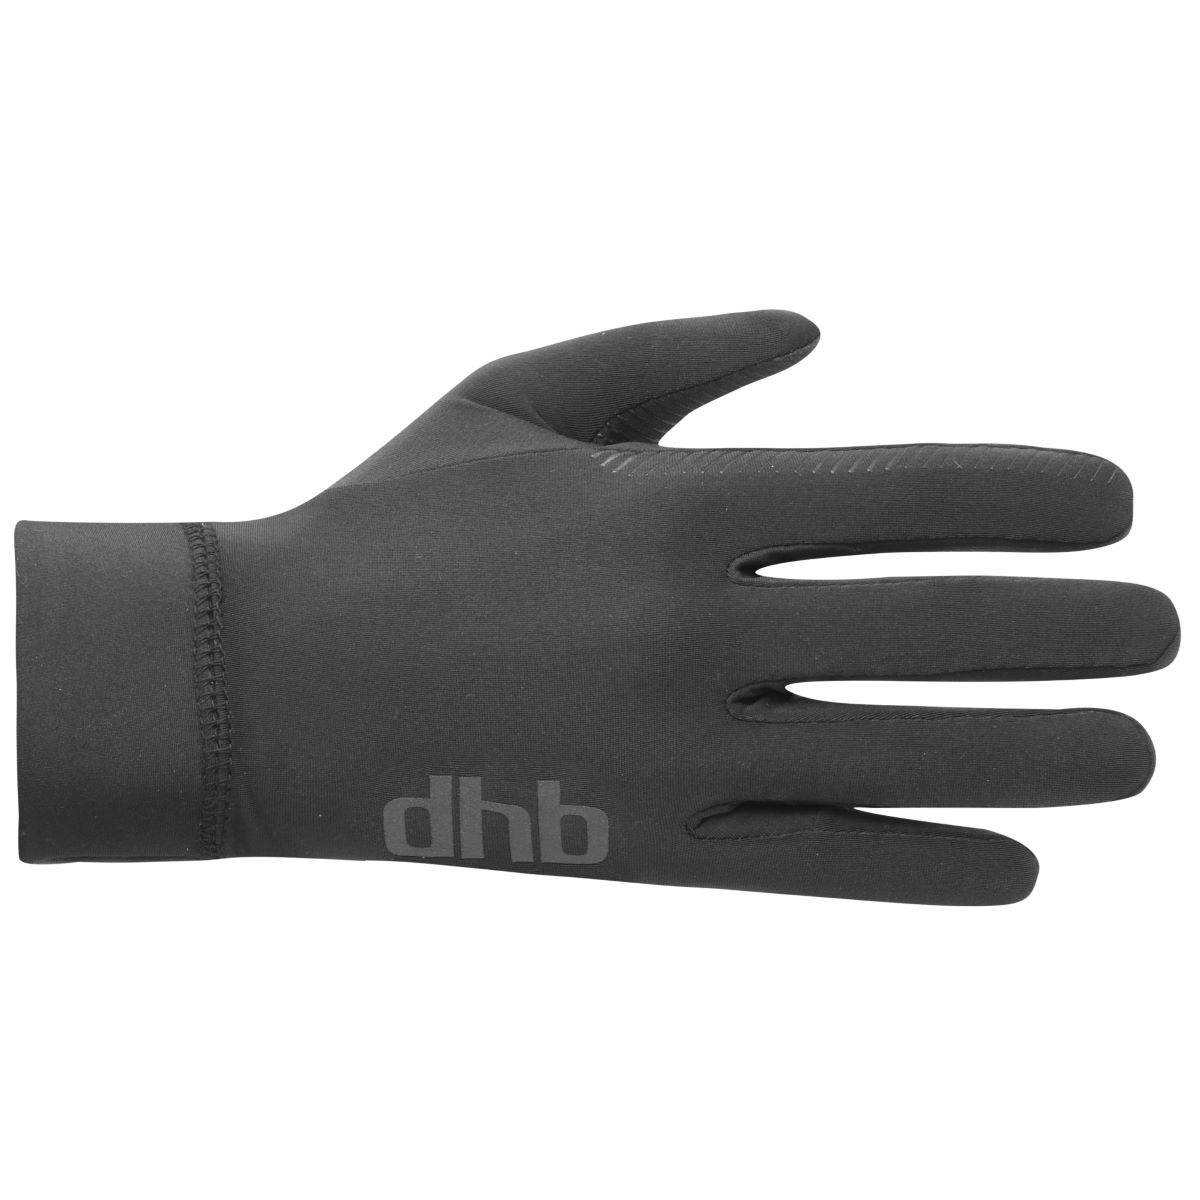 Dhb Roubaix Liner Glove - Extra Extra Large Black  Gloves